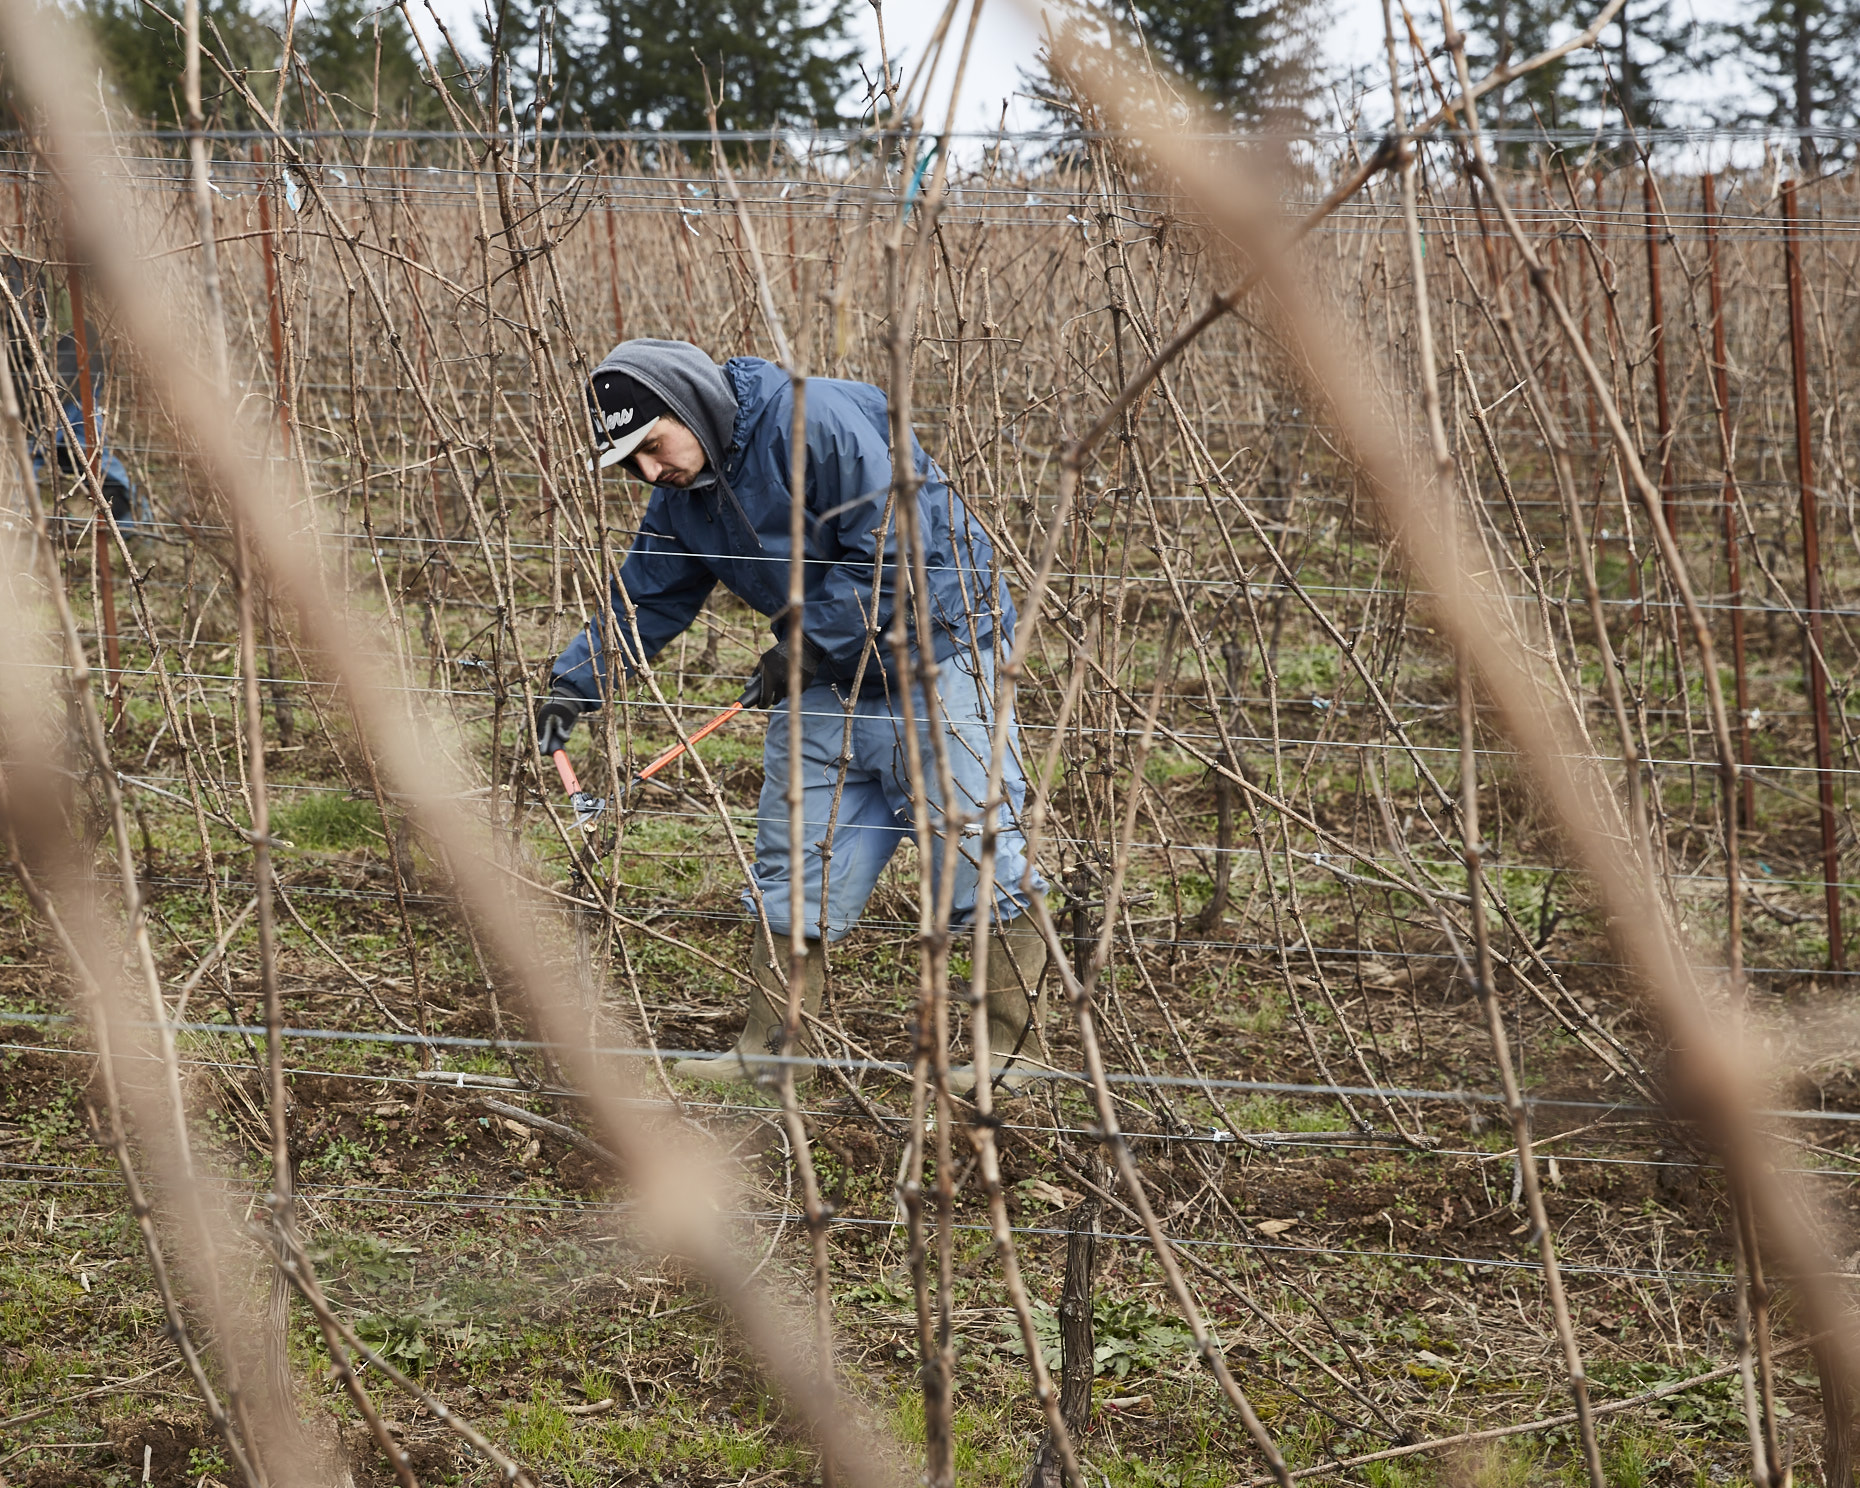 170104_JF_BF_PRUNING_032